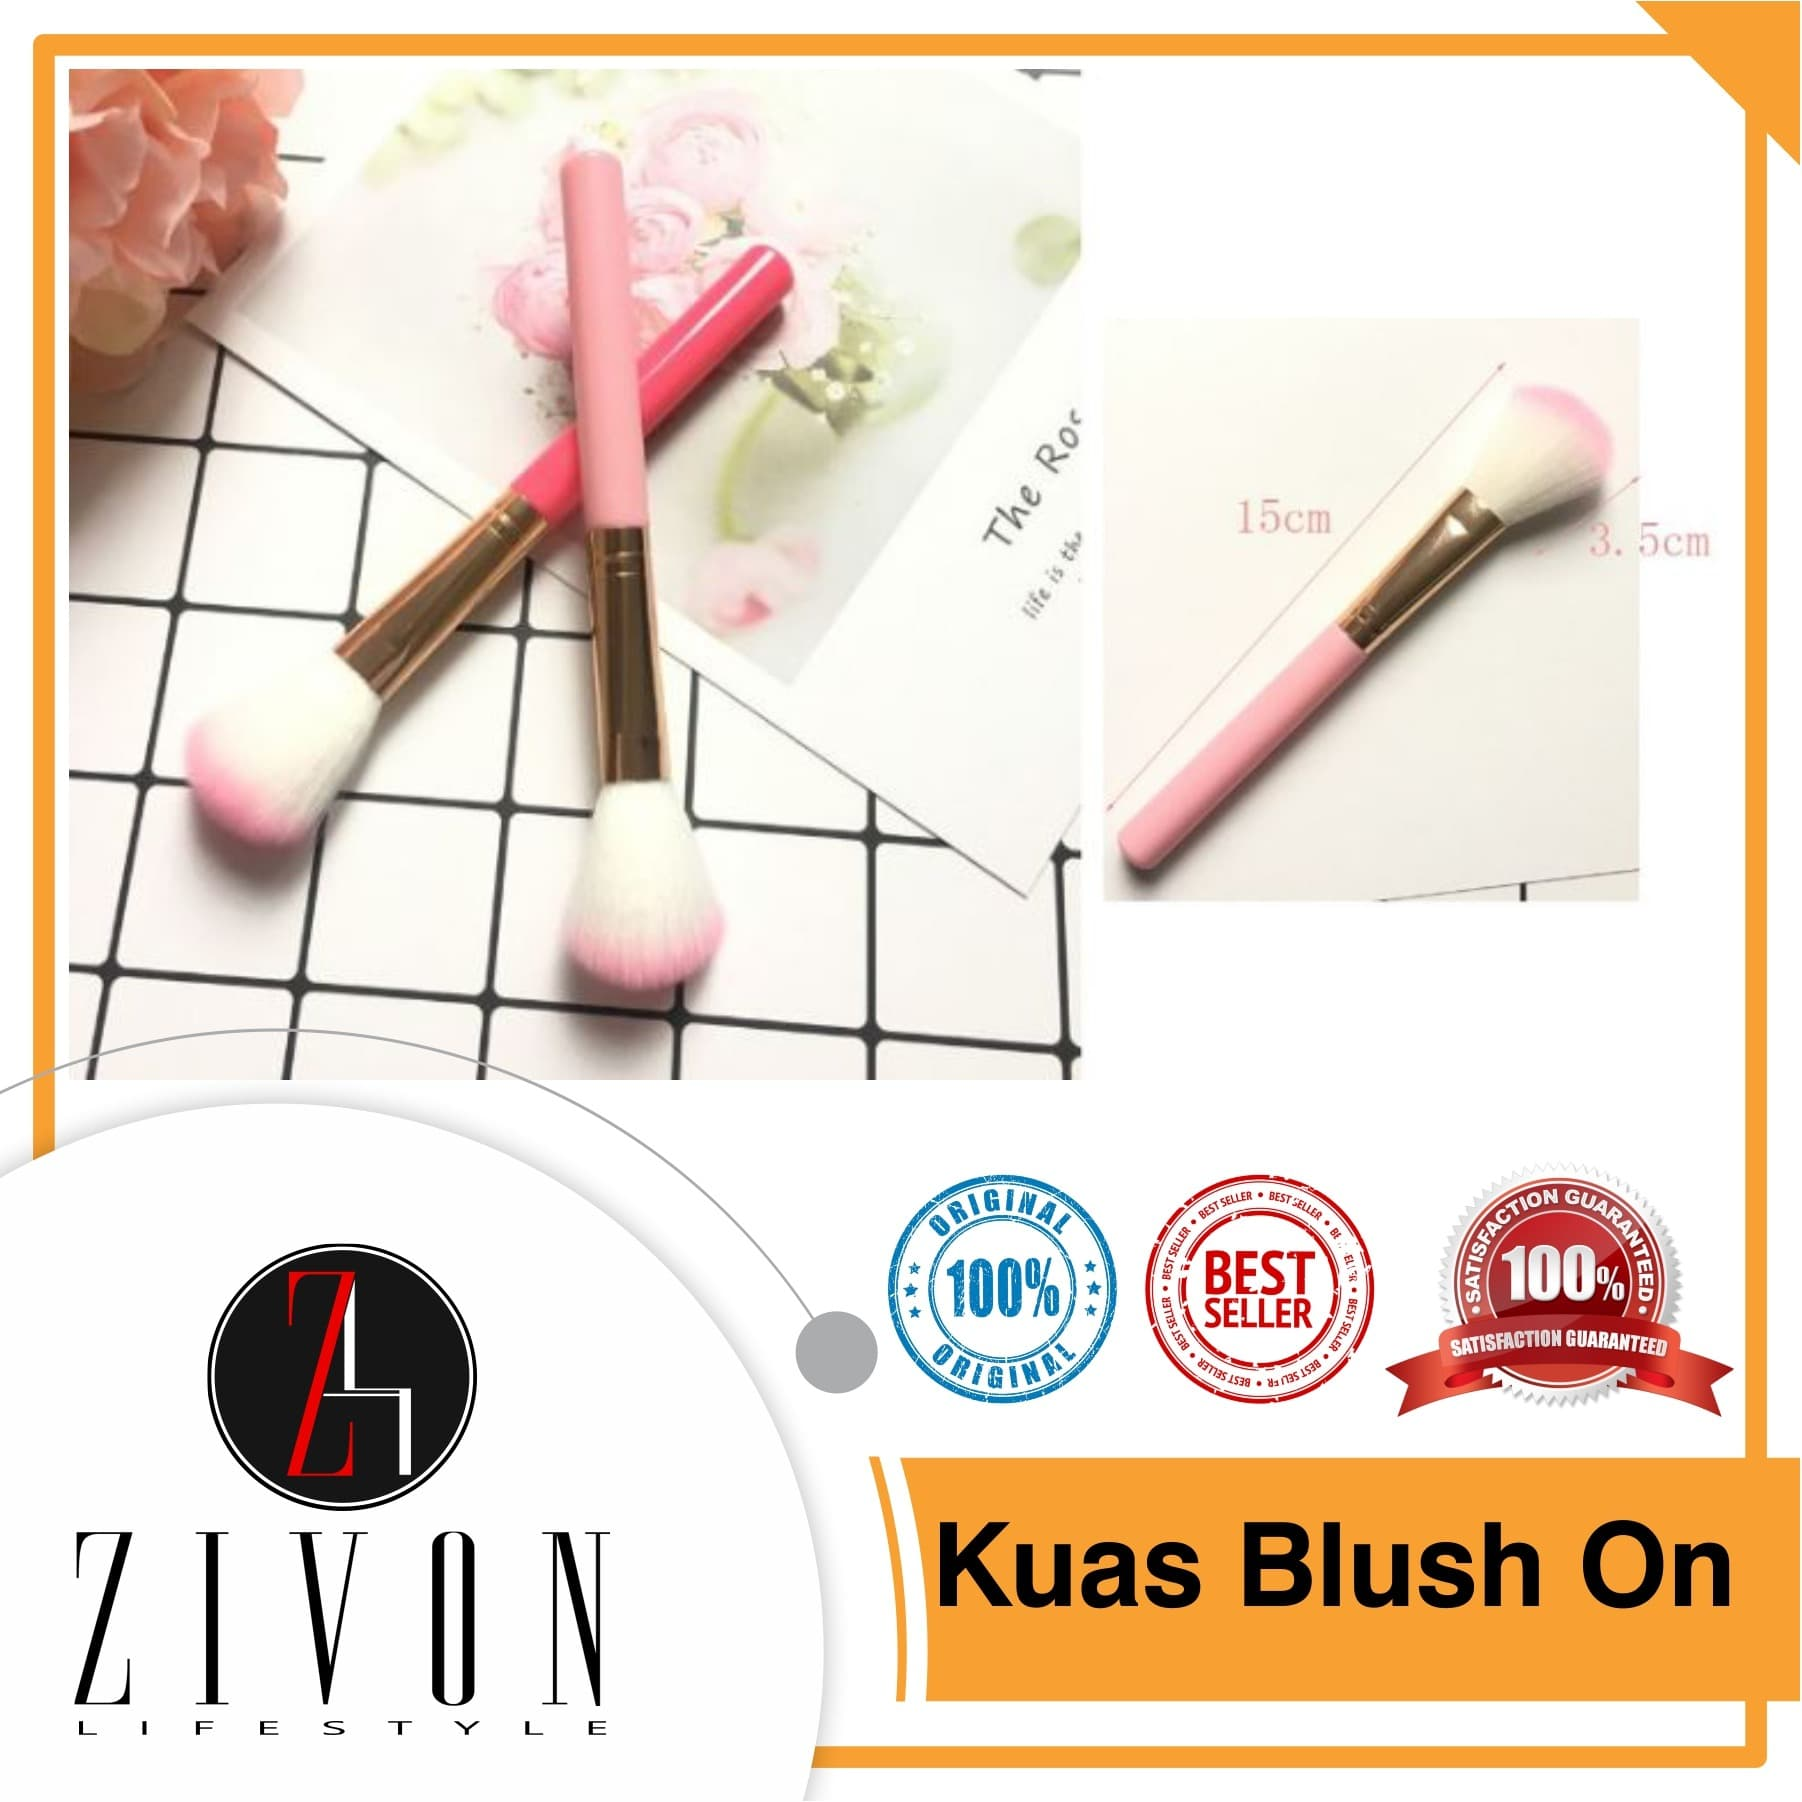 Kuas Blush On Brush Make Up Makeup thumbnail